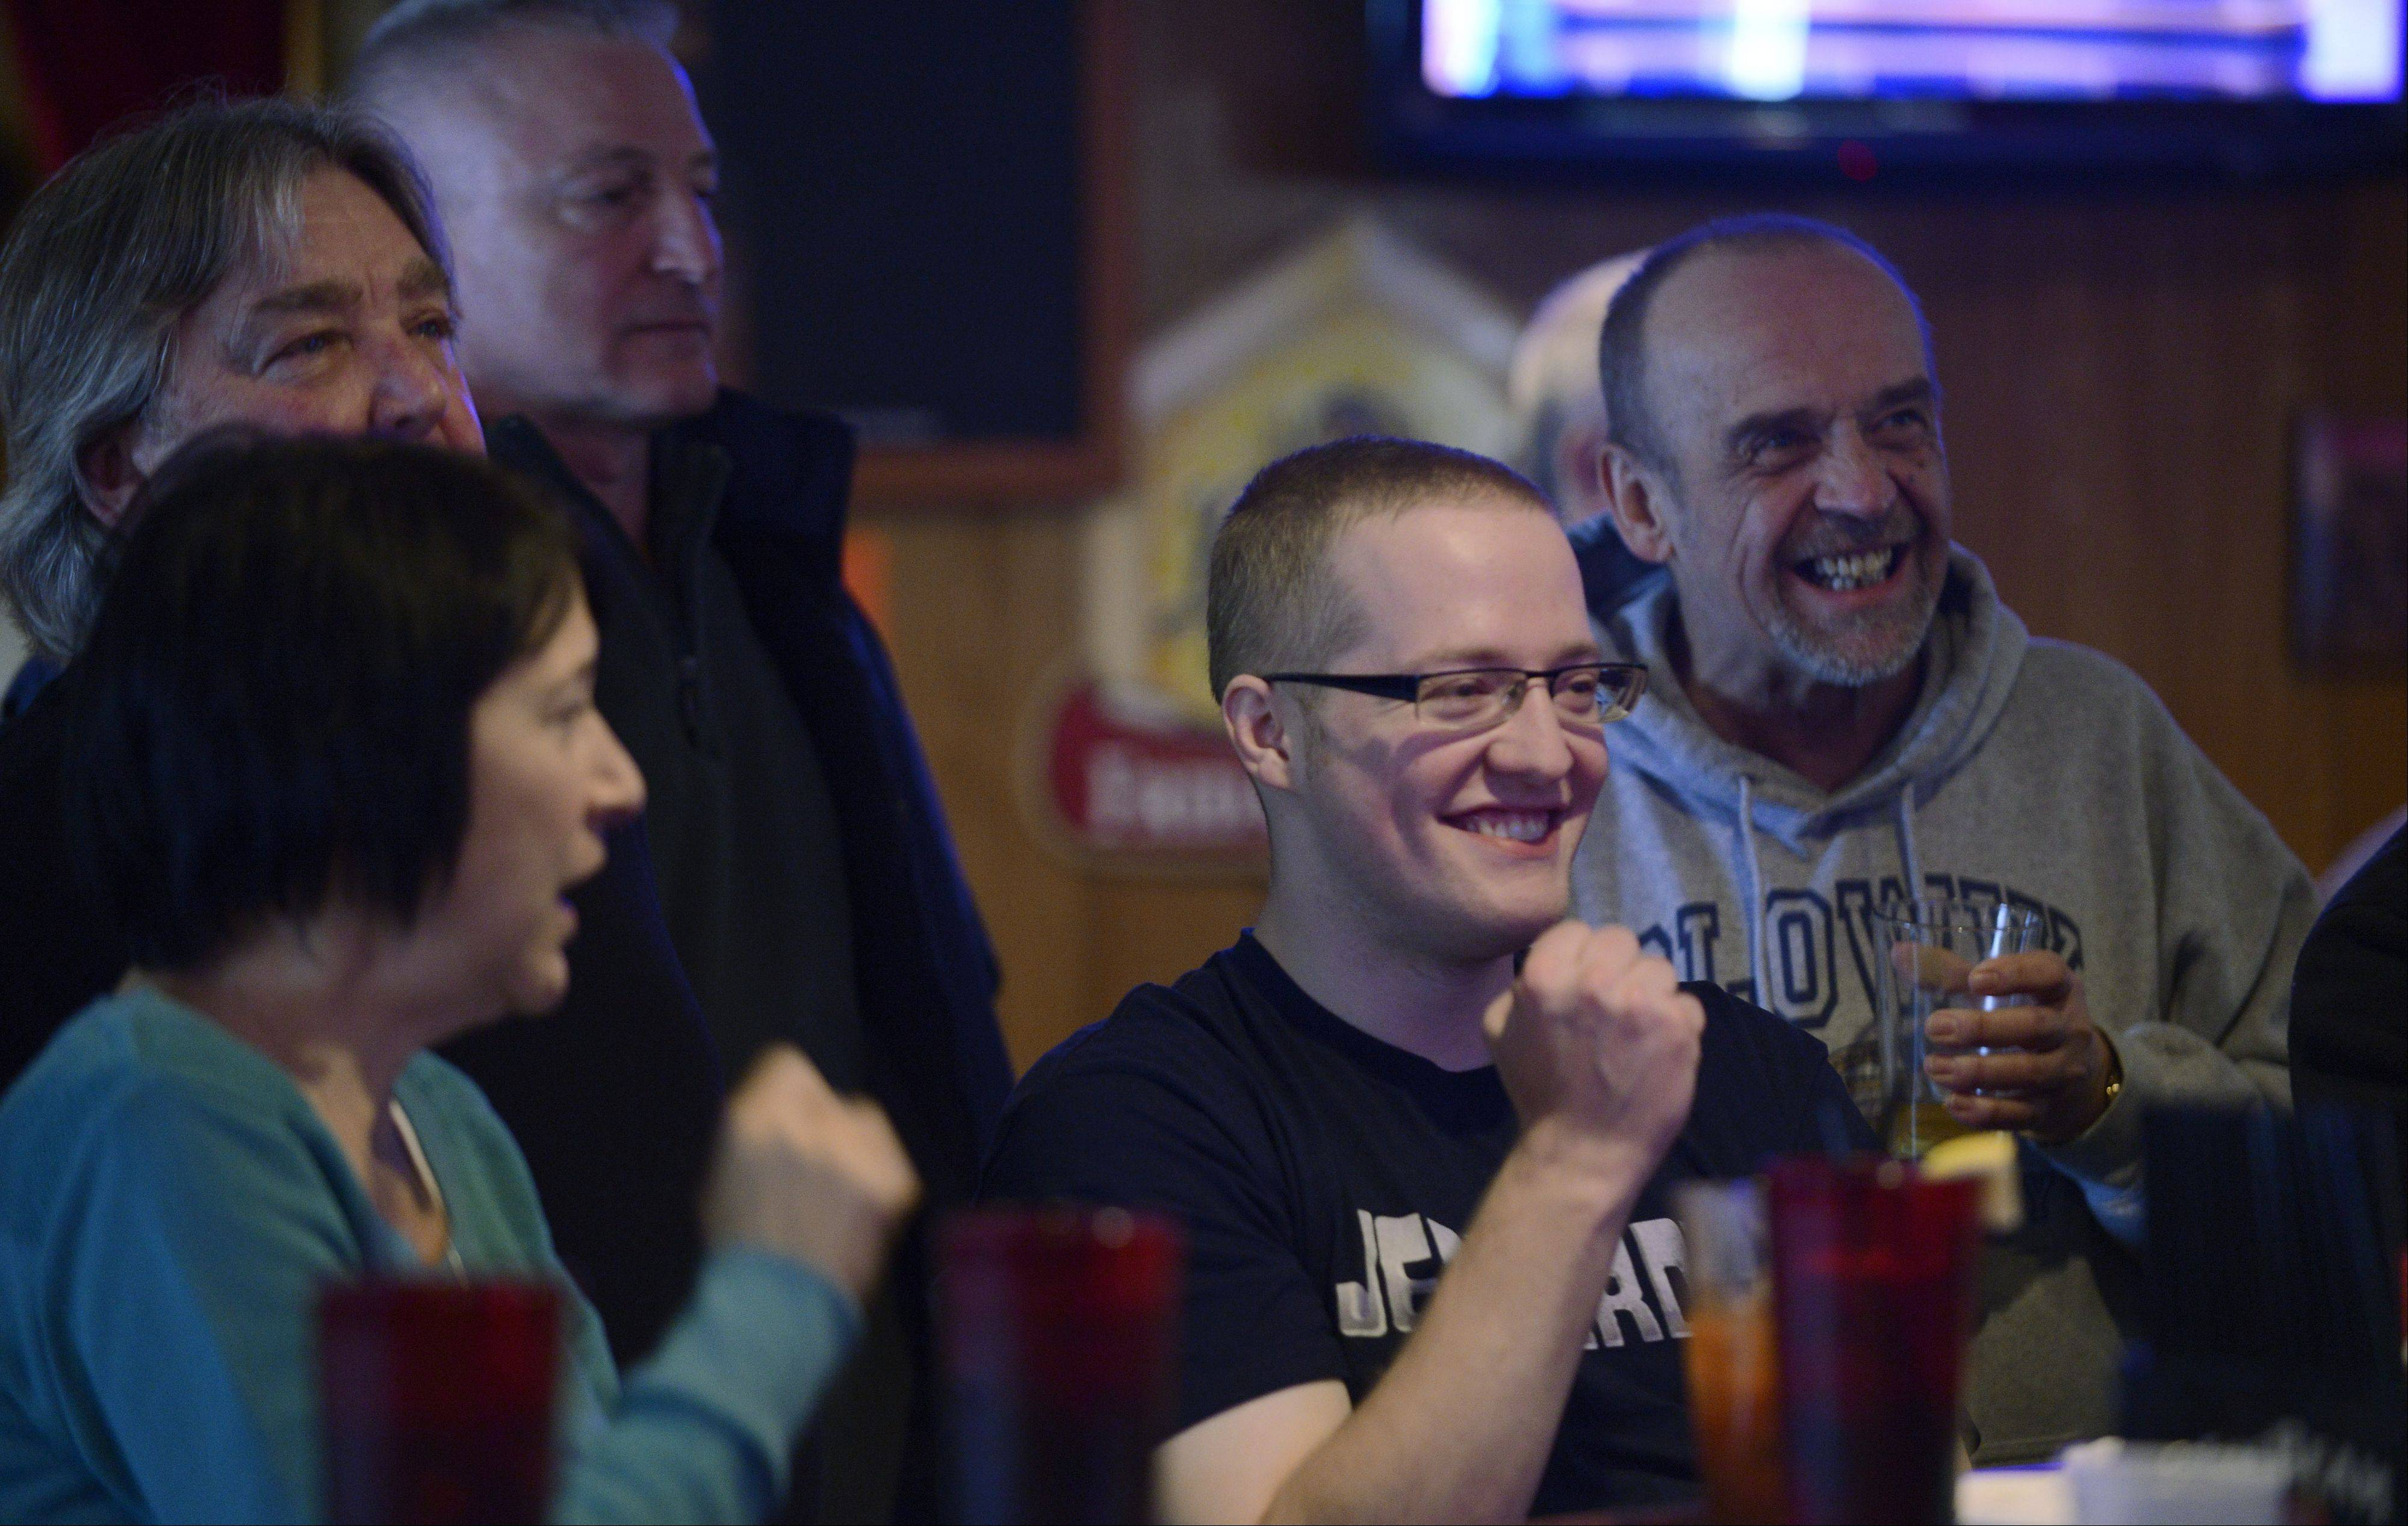 "Jerry Slowik, of Arlington Heights, gathers with family and friends to watch his latest appearance on ""Jeopardy"" at Eddie's Restaurant and Lounge in Arlington Heights on New Year's Eve Tuesday. His mom, Debbie, and dad, Jerry, stand beside him as he pumps his fist after answering a question correctly on the prerecorded program."